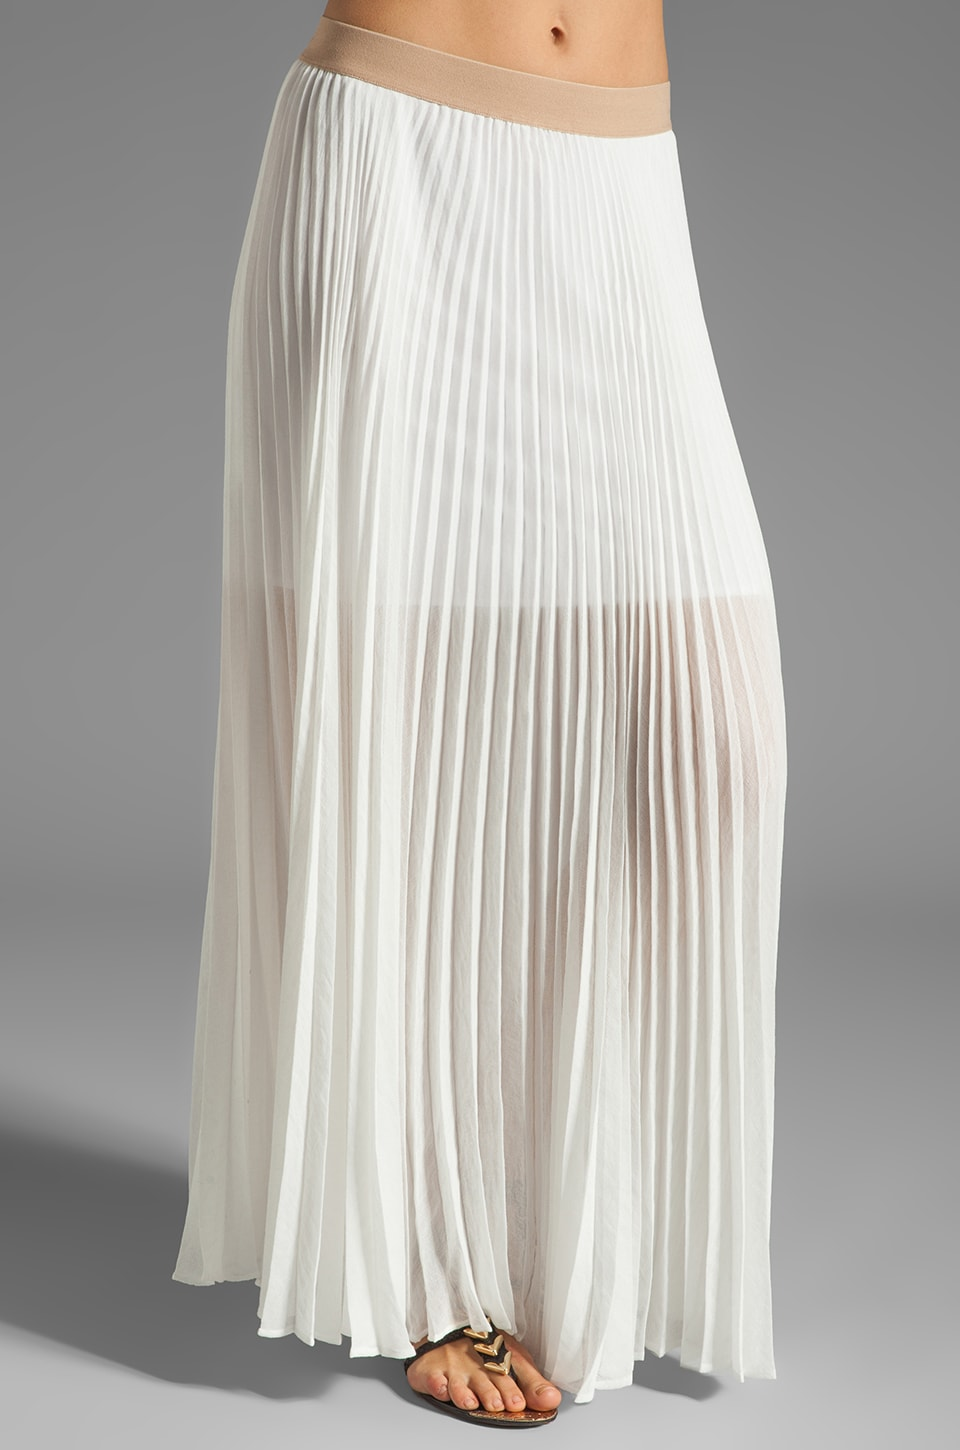 BCBGMAXAZRIA Pleated Maxi Skirt in White